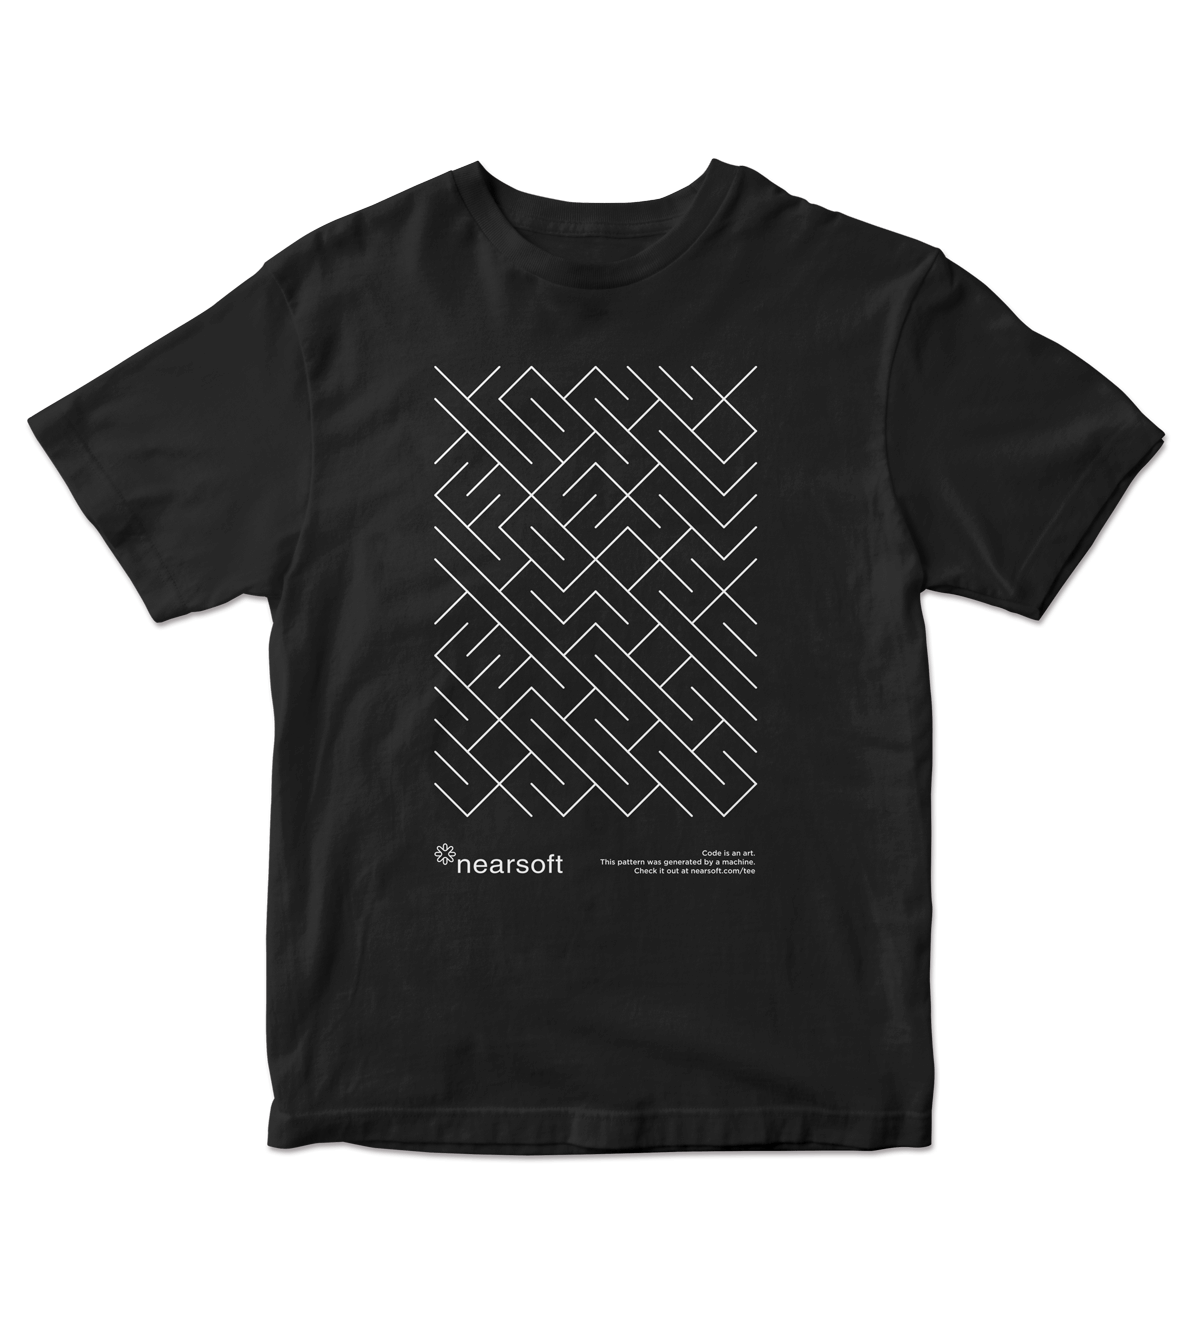 Nearsoft Code Tee - Black